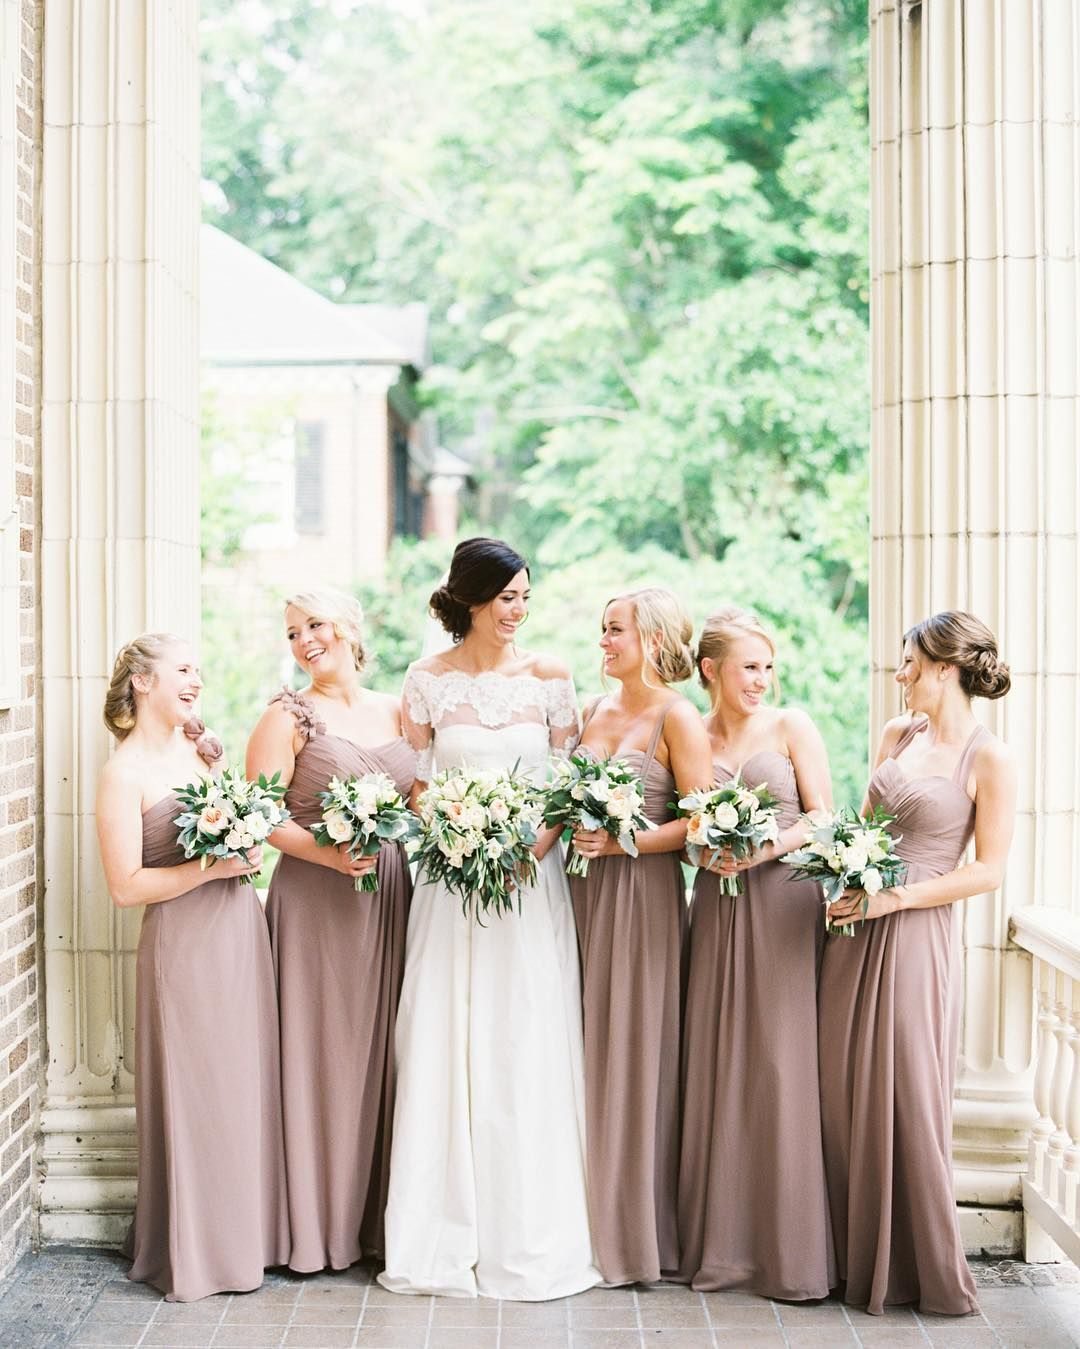 """""""We A Good Earth Tone! This Bride Pulled Off The Look"""